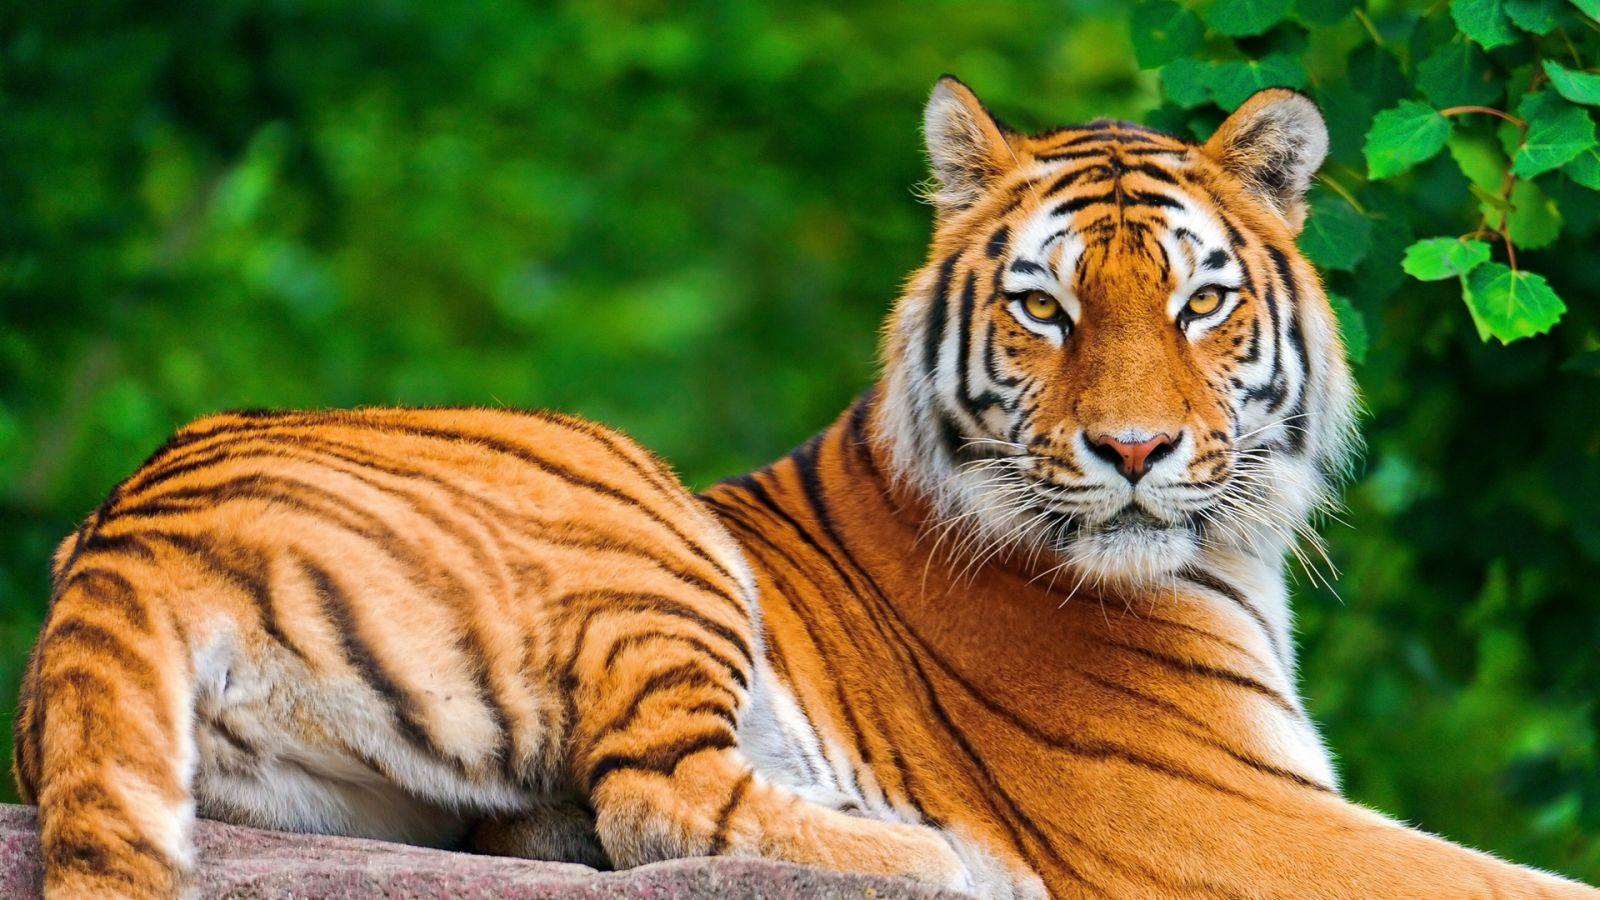 21 Full Hd Animal Wallpaper Pictures Image And Animal Photos Top